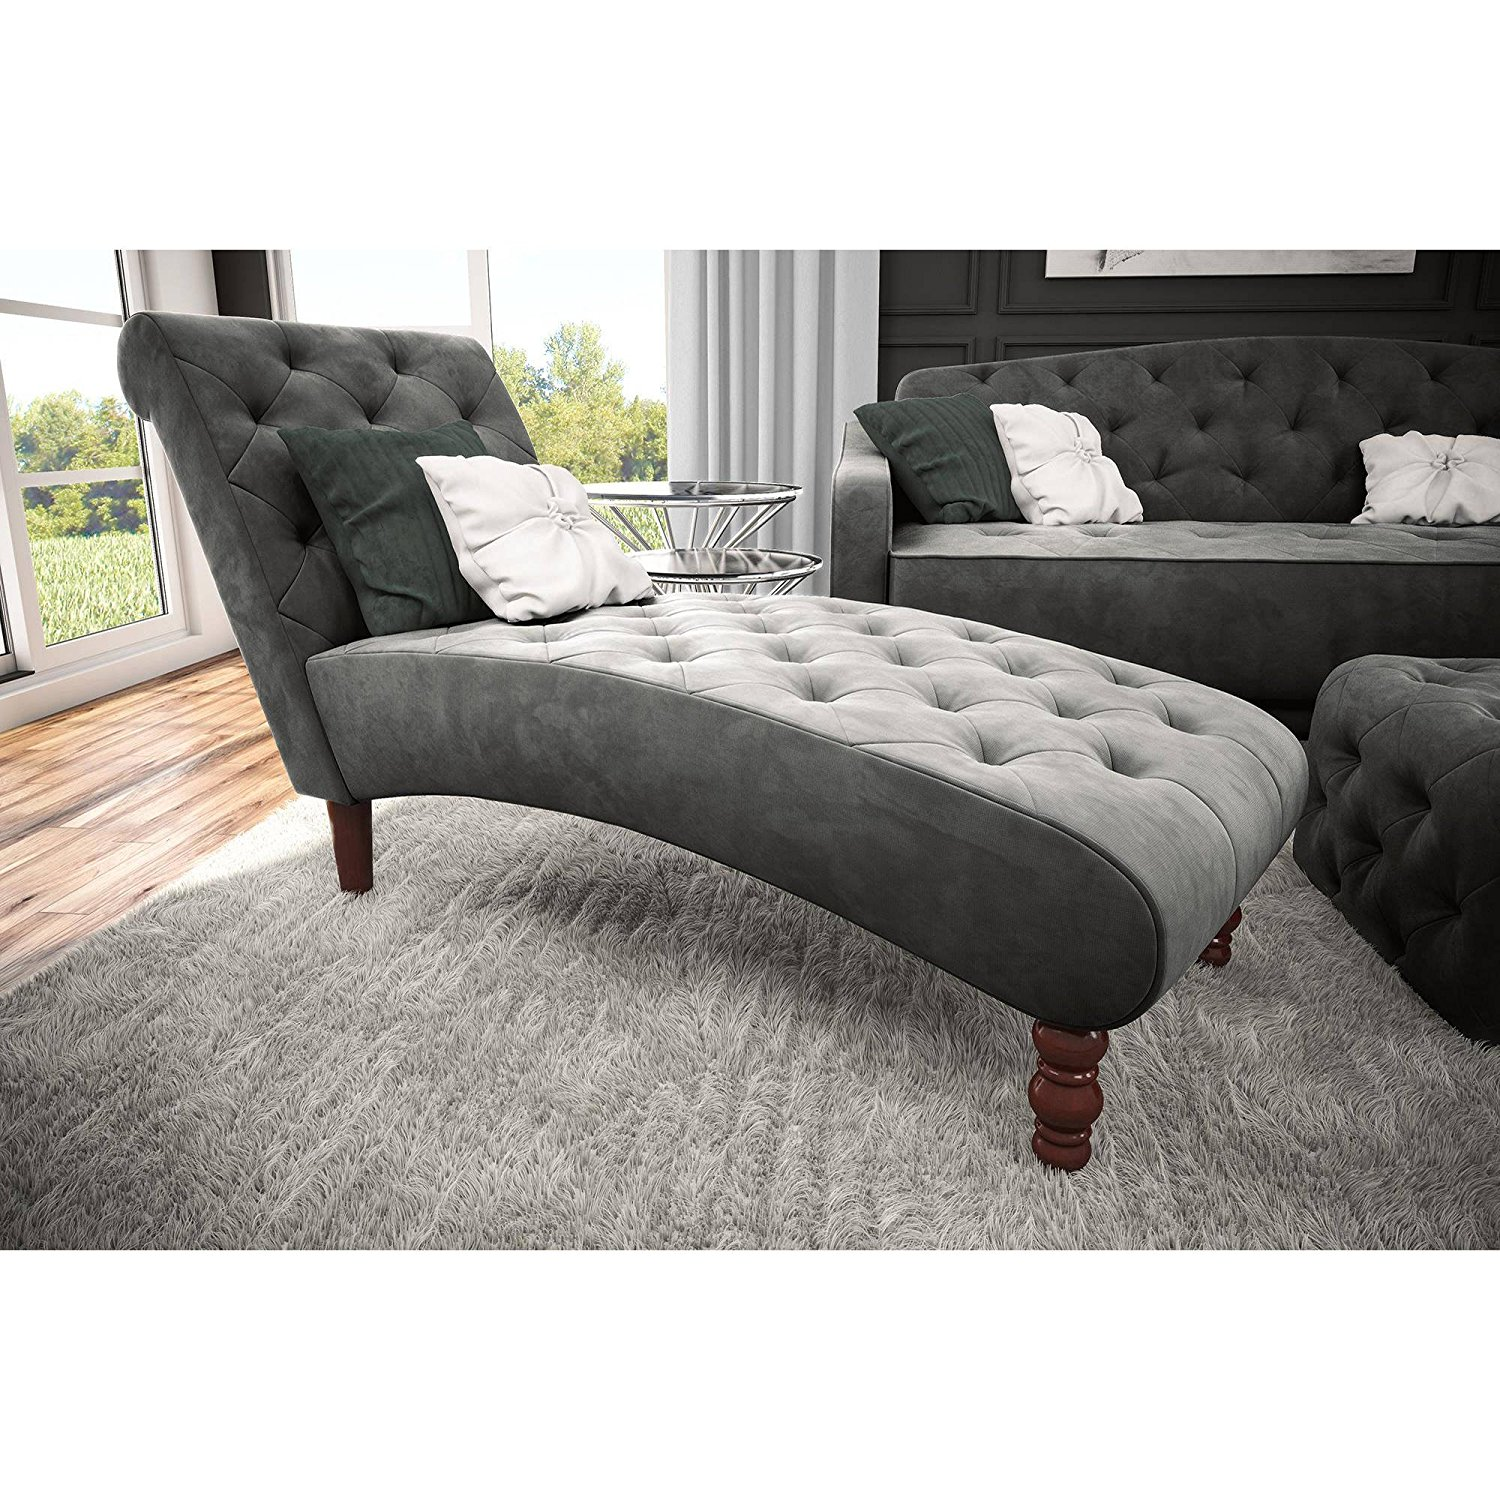 Vintage 18th Century Styled Tufted Chaise, Velvet Upholstery, Inclined Back and Angled Base are Contoured to Perfectly Fit Your Form, Ideal for Your Living Room and Home Office + Expert Guide